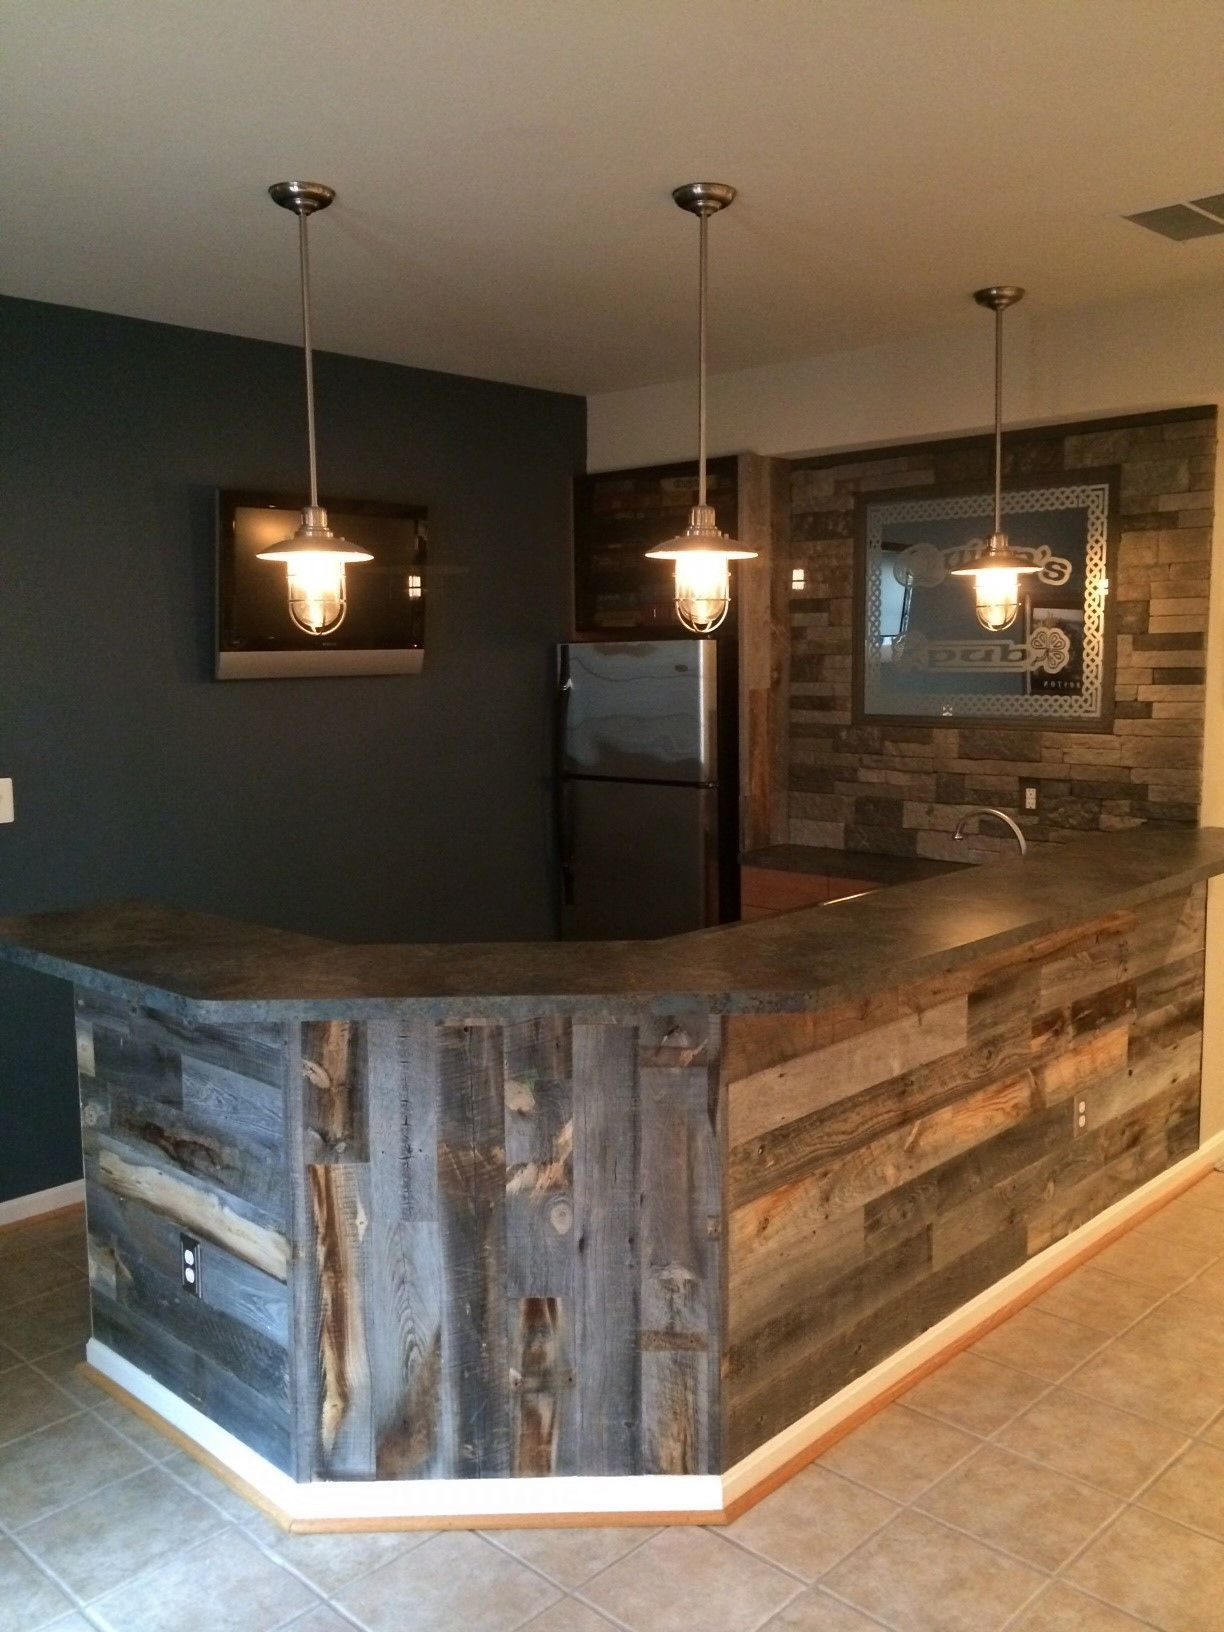 Reclaimed Weathered Wood in 2018 | Home | Pinterest | Wood walls ...